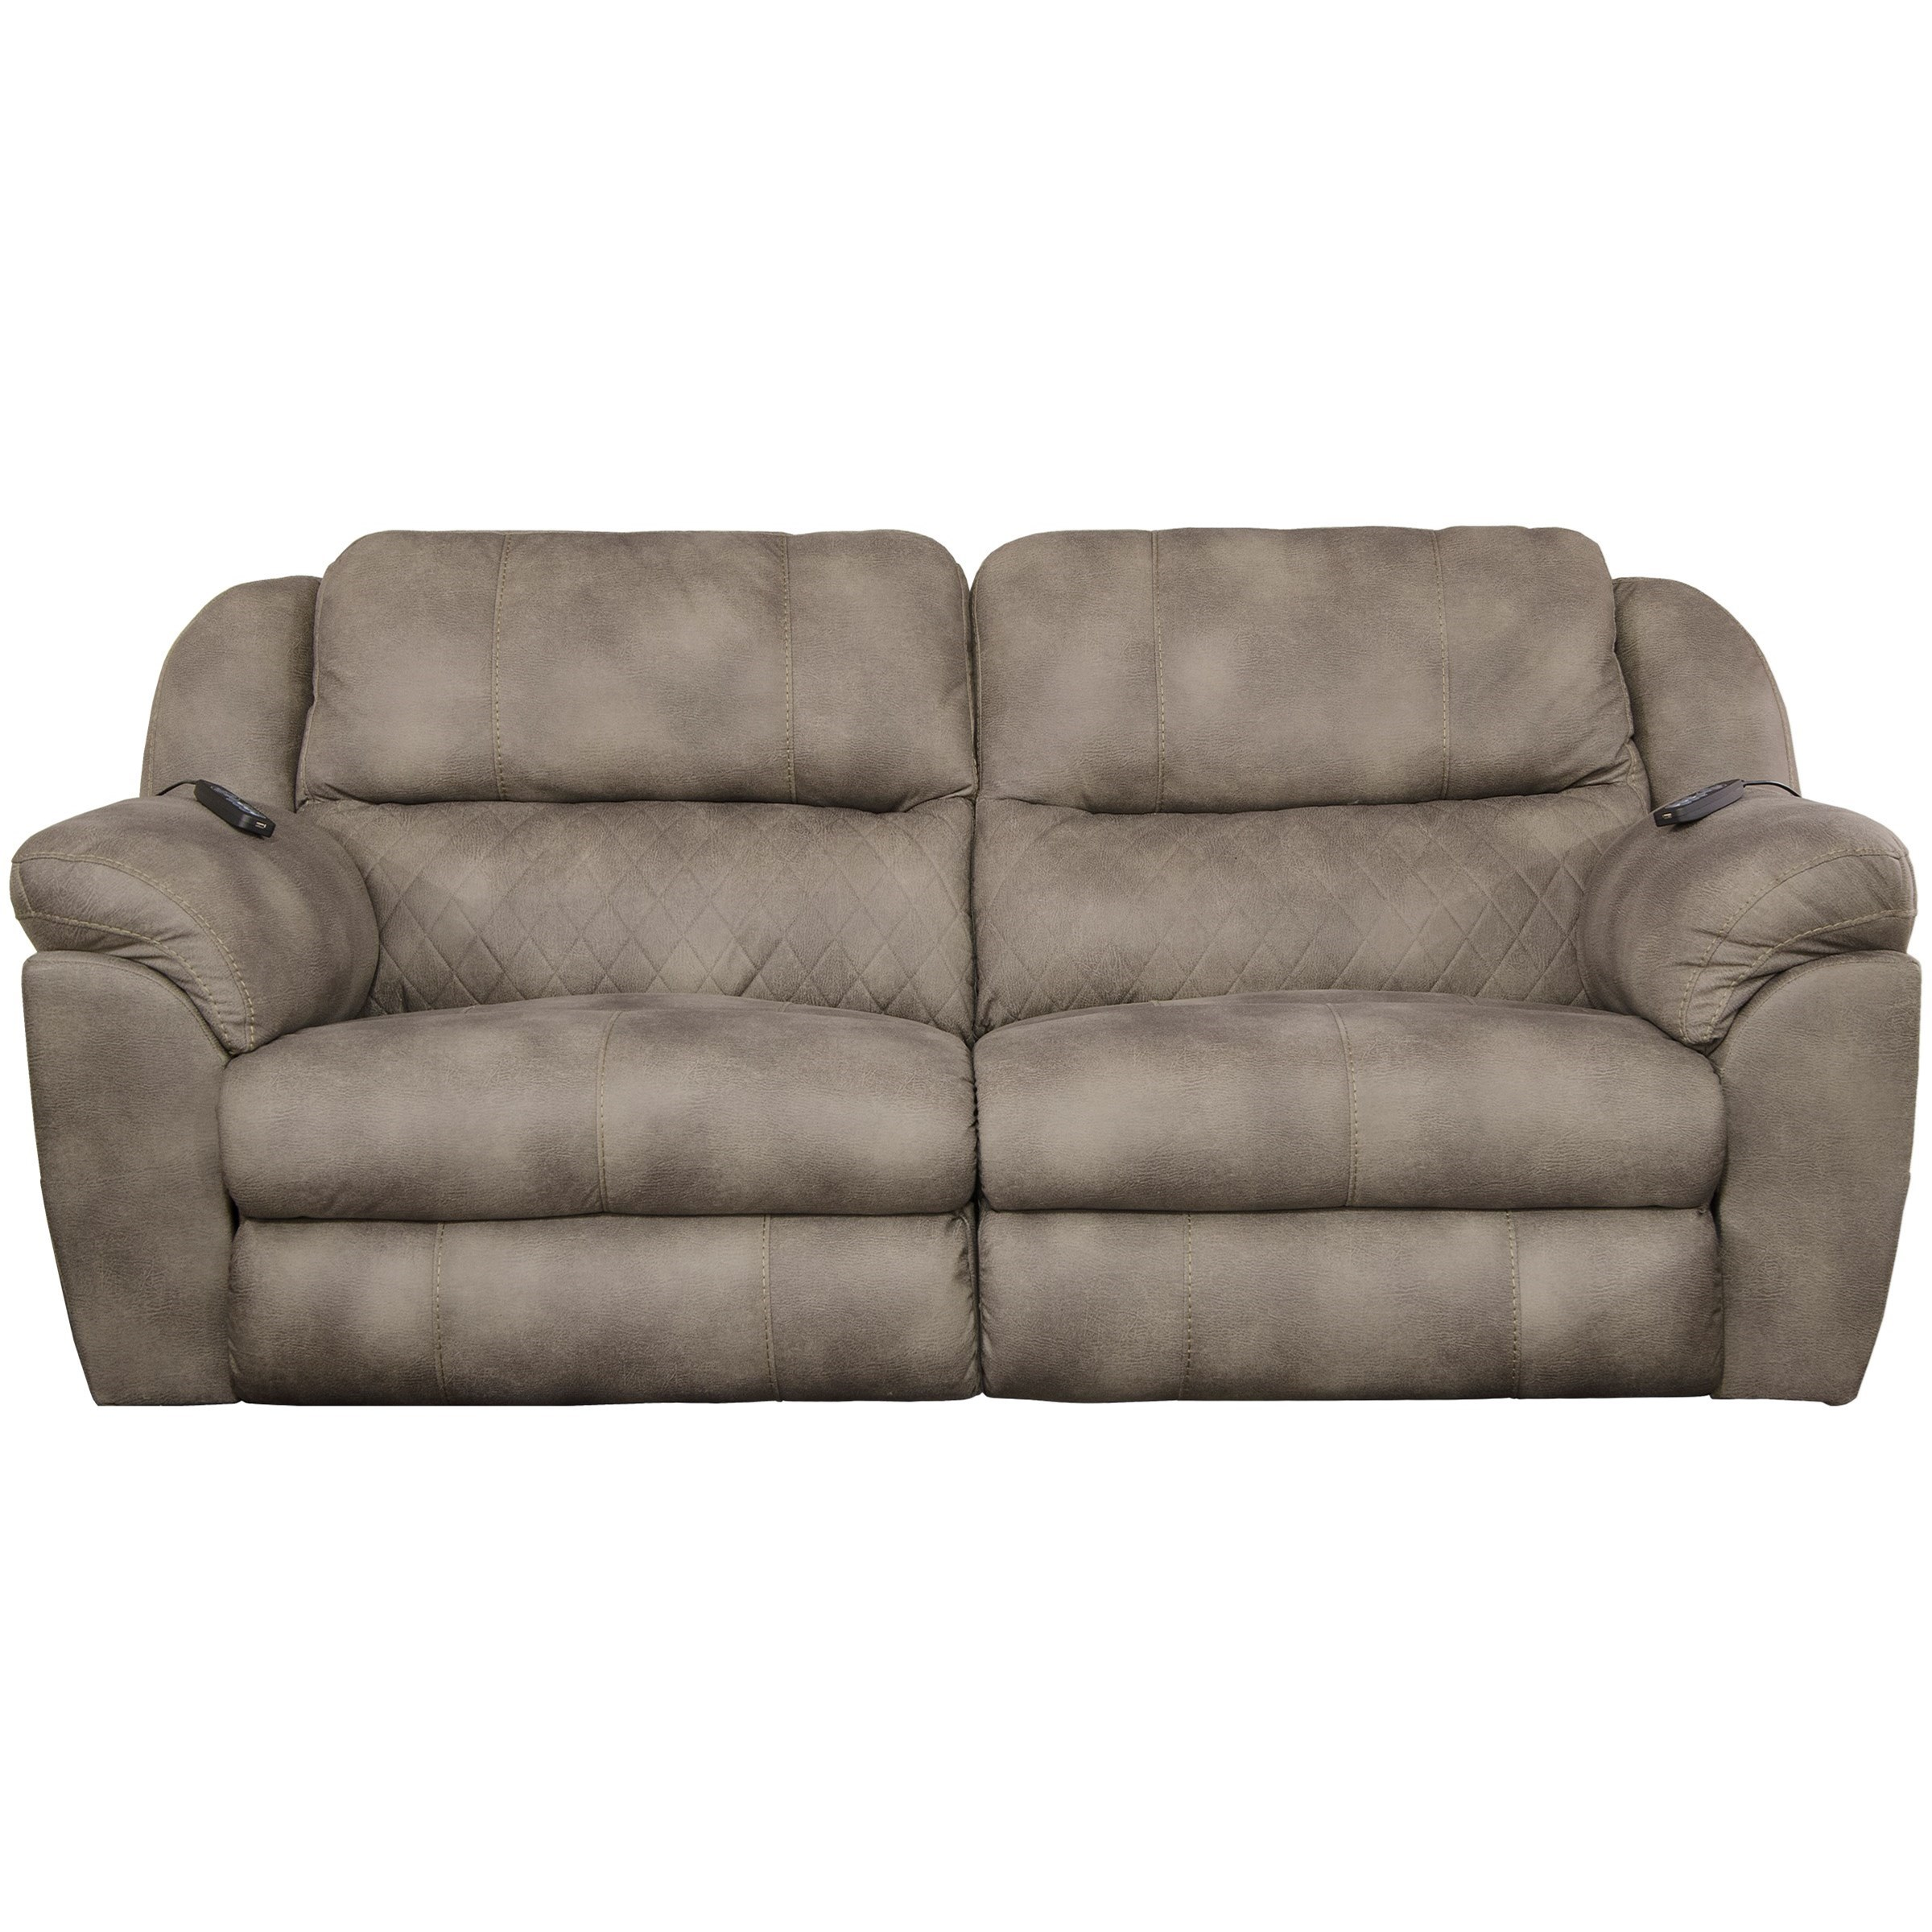 Flynn Power Lay Flat Reclining Sofa by Catnapper at Northeast Factory Direct